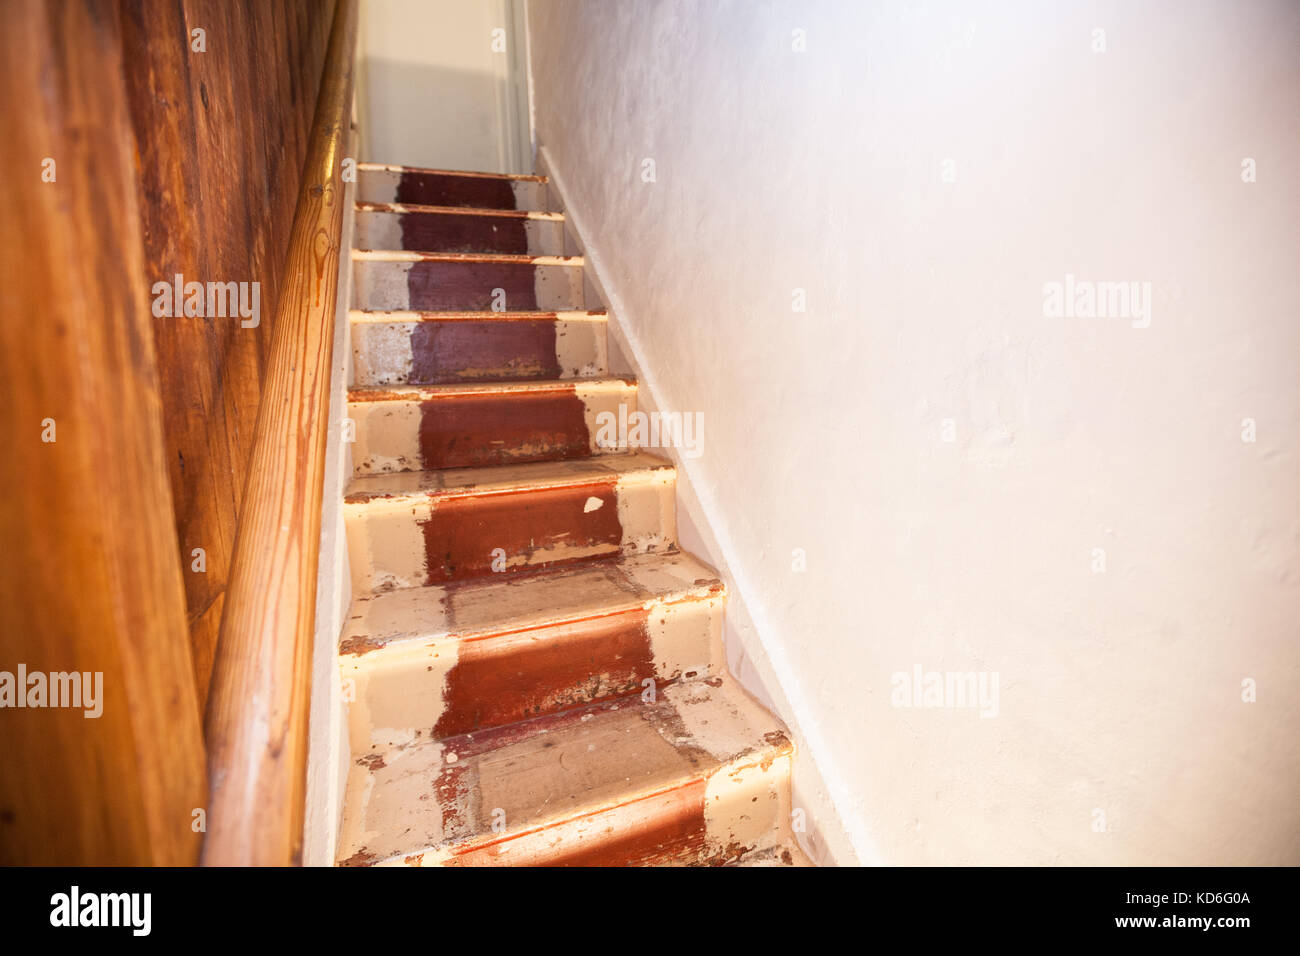 PROPERTY RELEASE,MY HOUSE STAIRS, Renovation,do It Yourself,DIY,diy